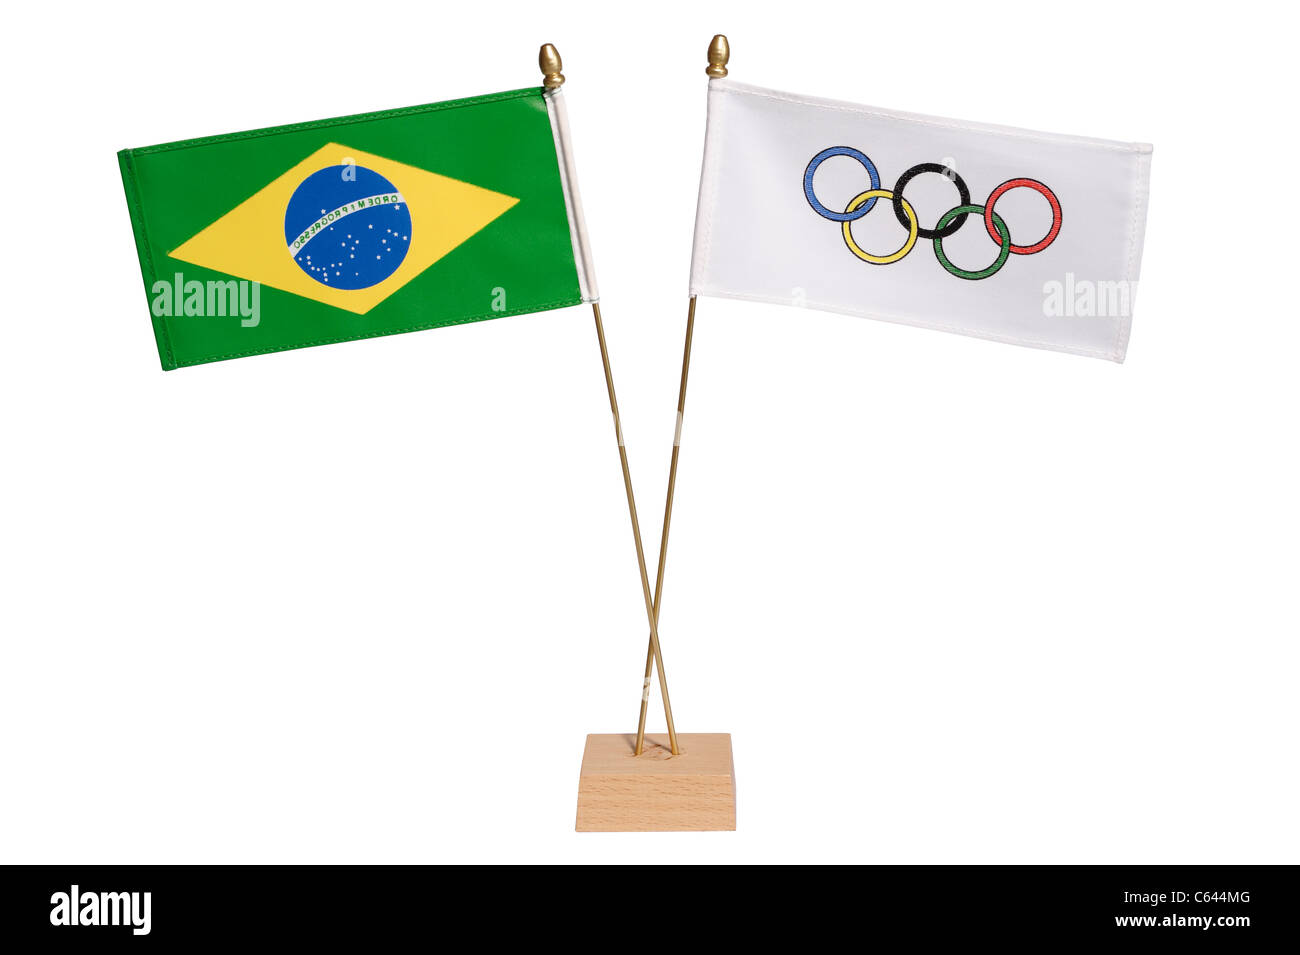 Brazil and Olympic flags - Stock Image